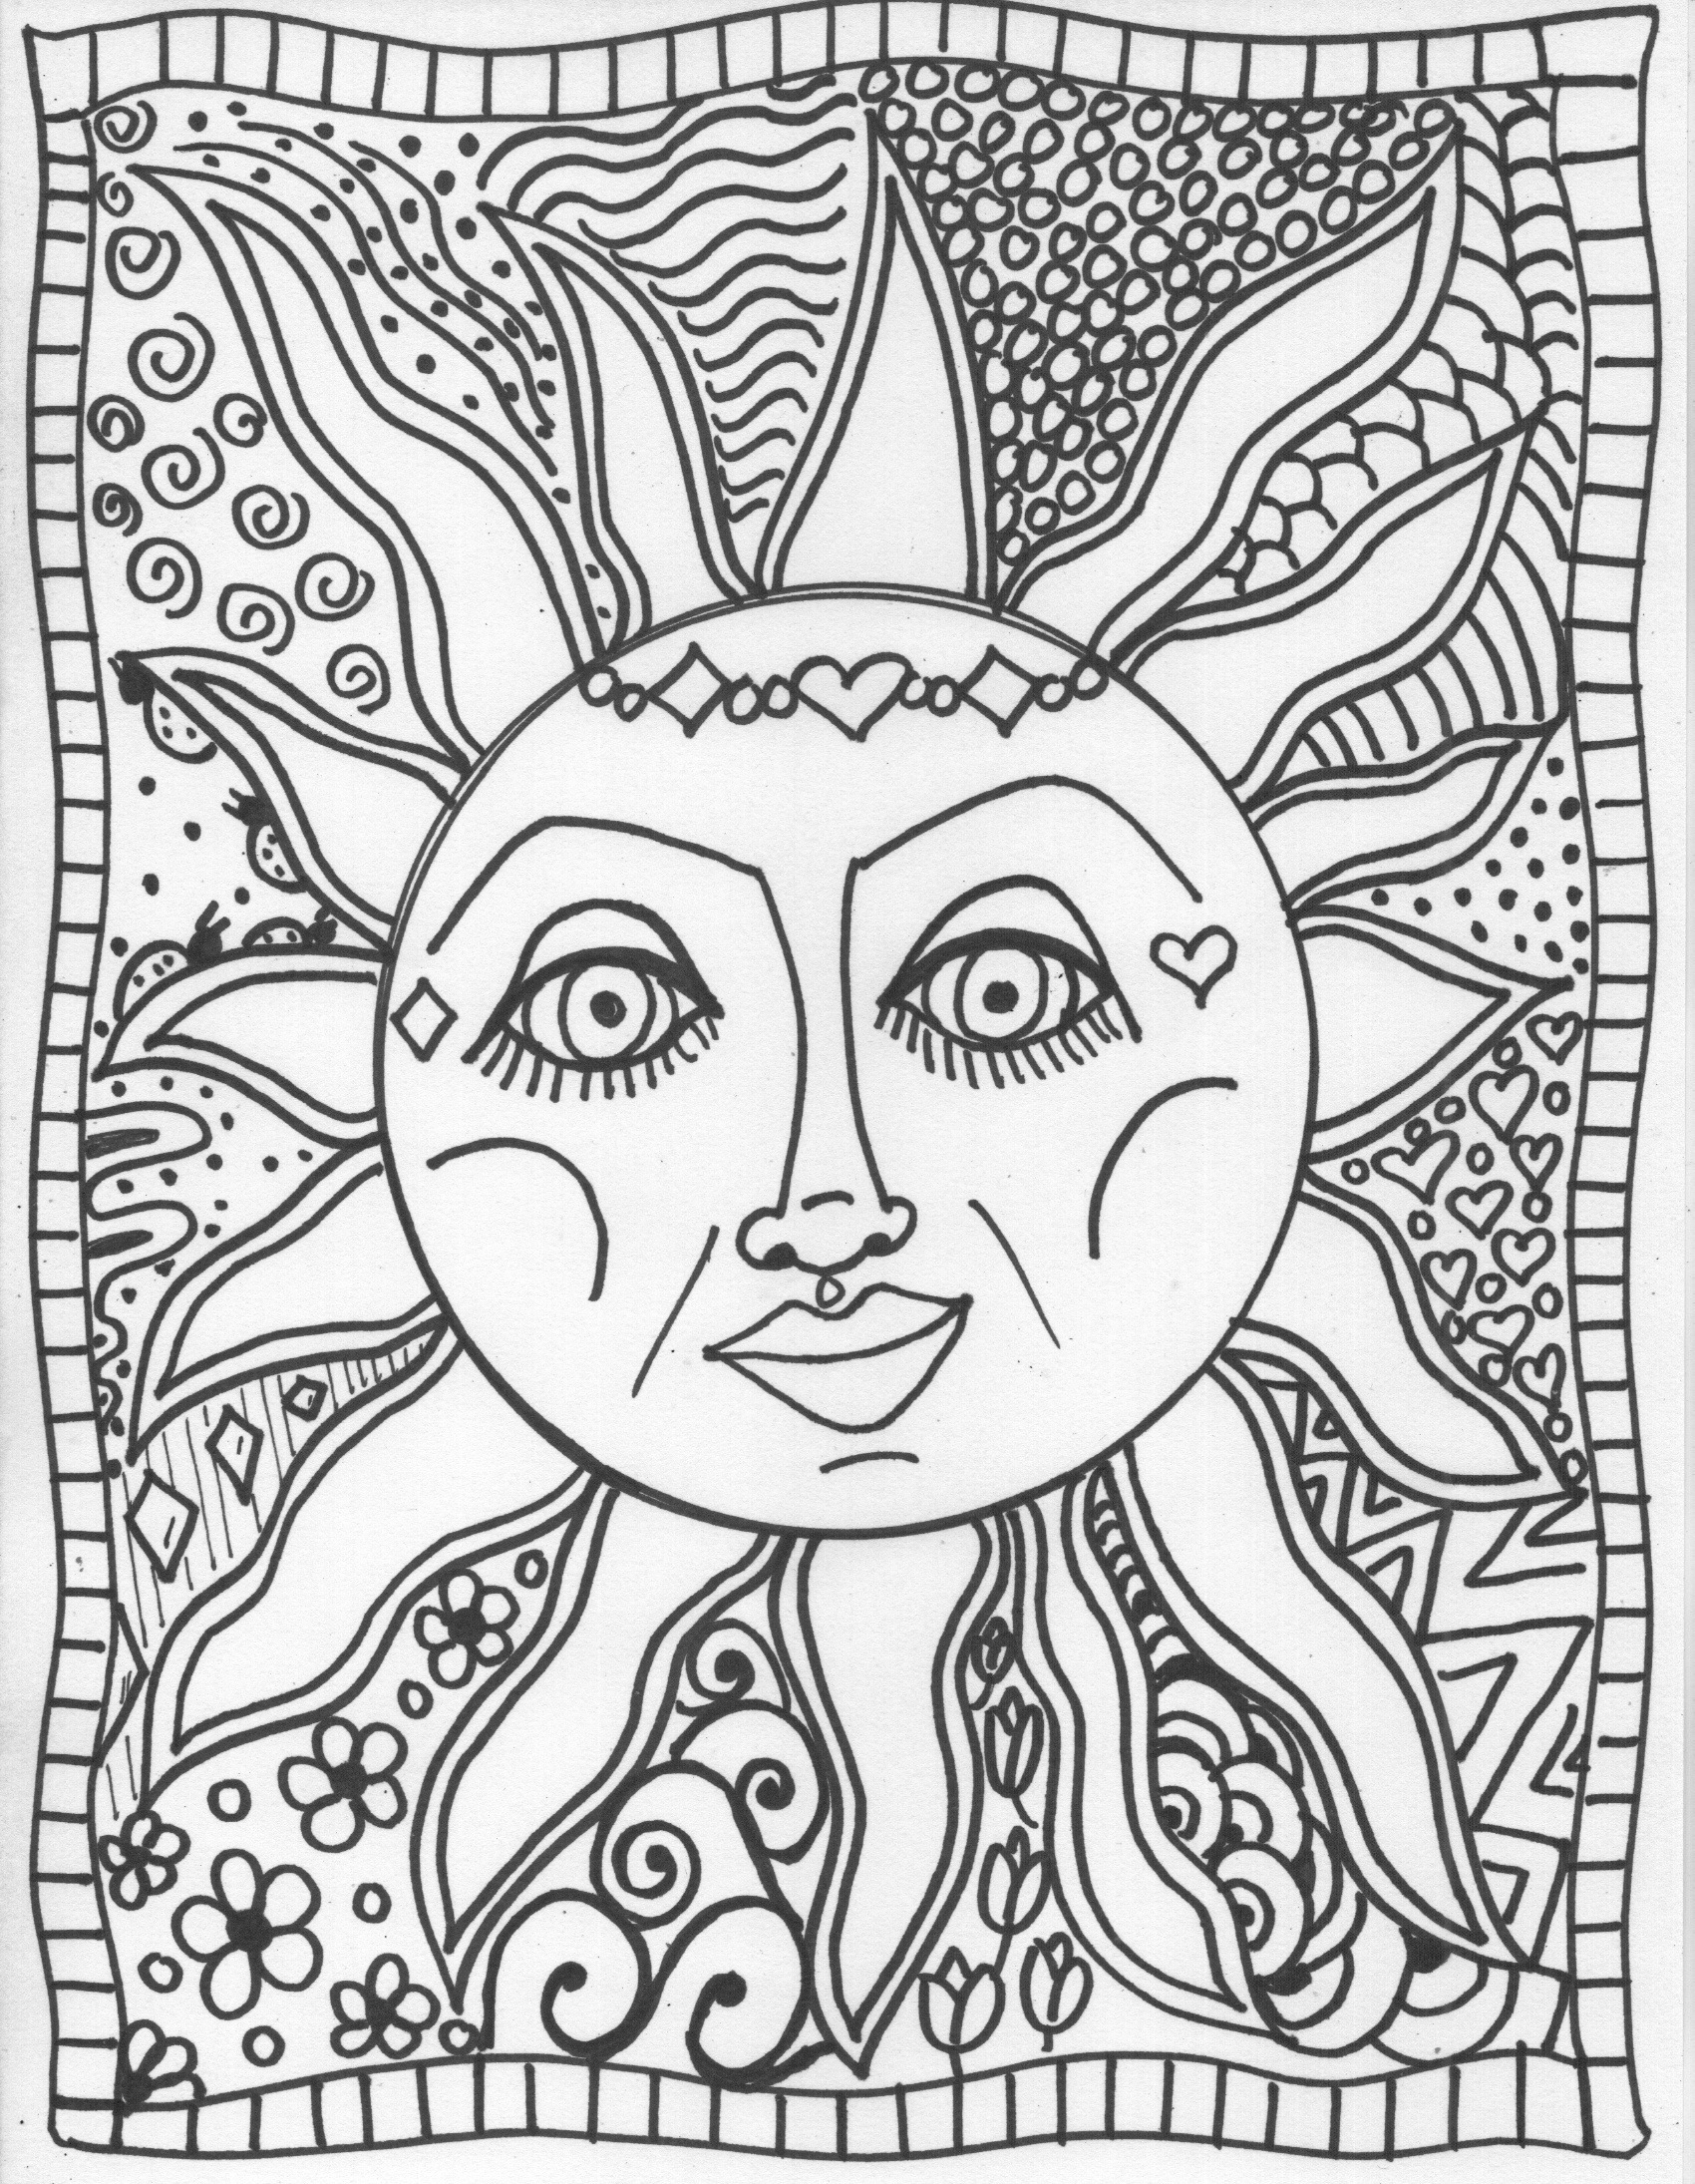 Coloring Pages : Trippy Coloring Pages Sun Coloringstar Adult For - Free Printable Trippy Coloring Pages